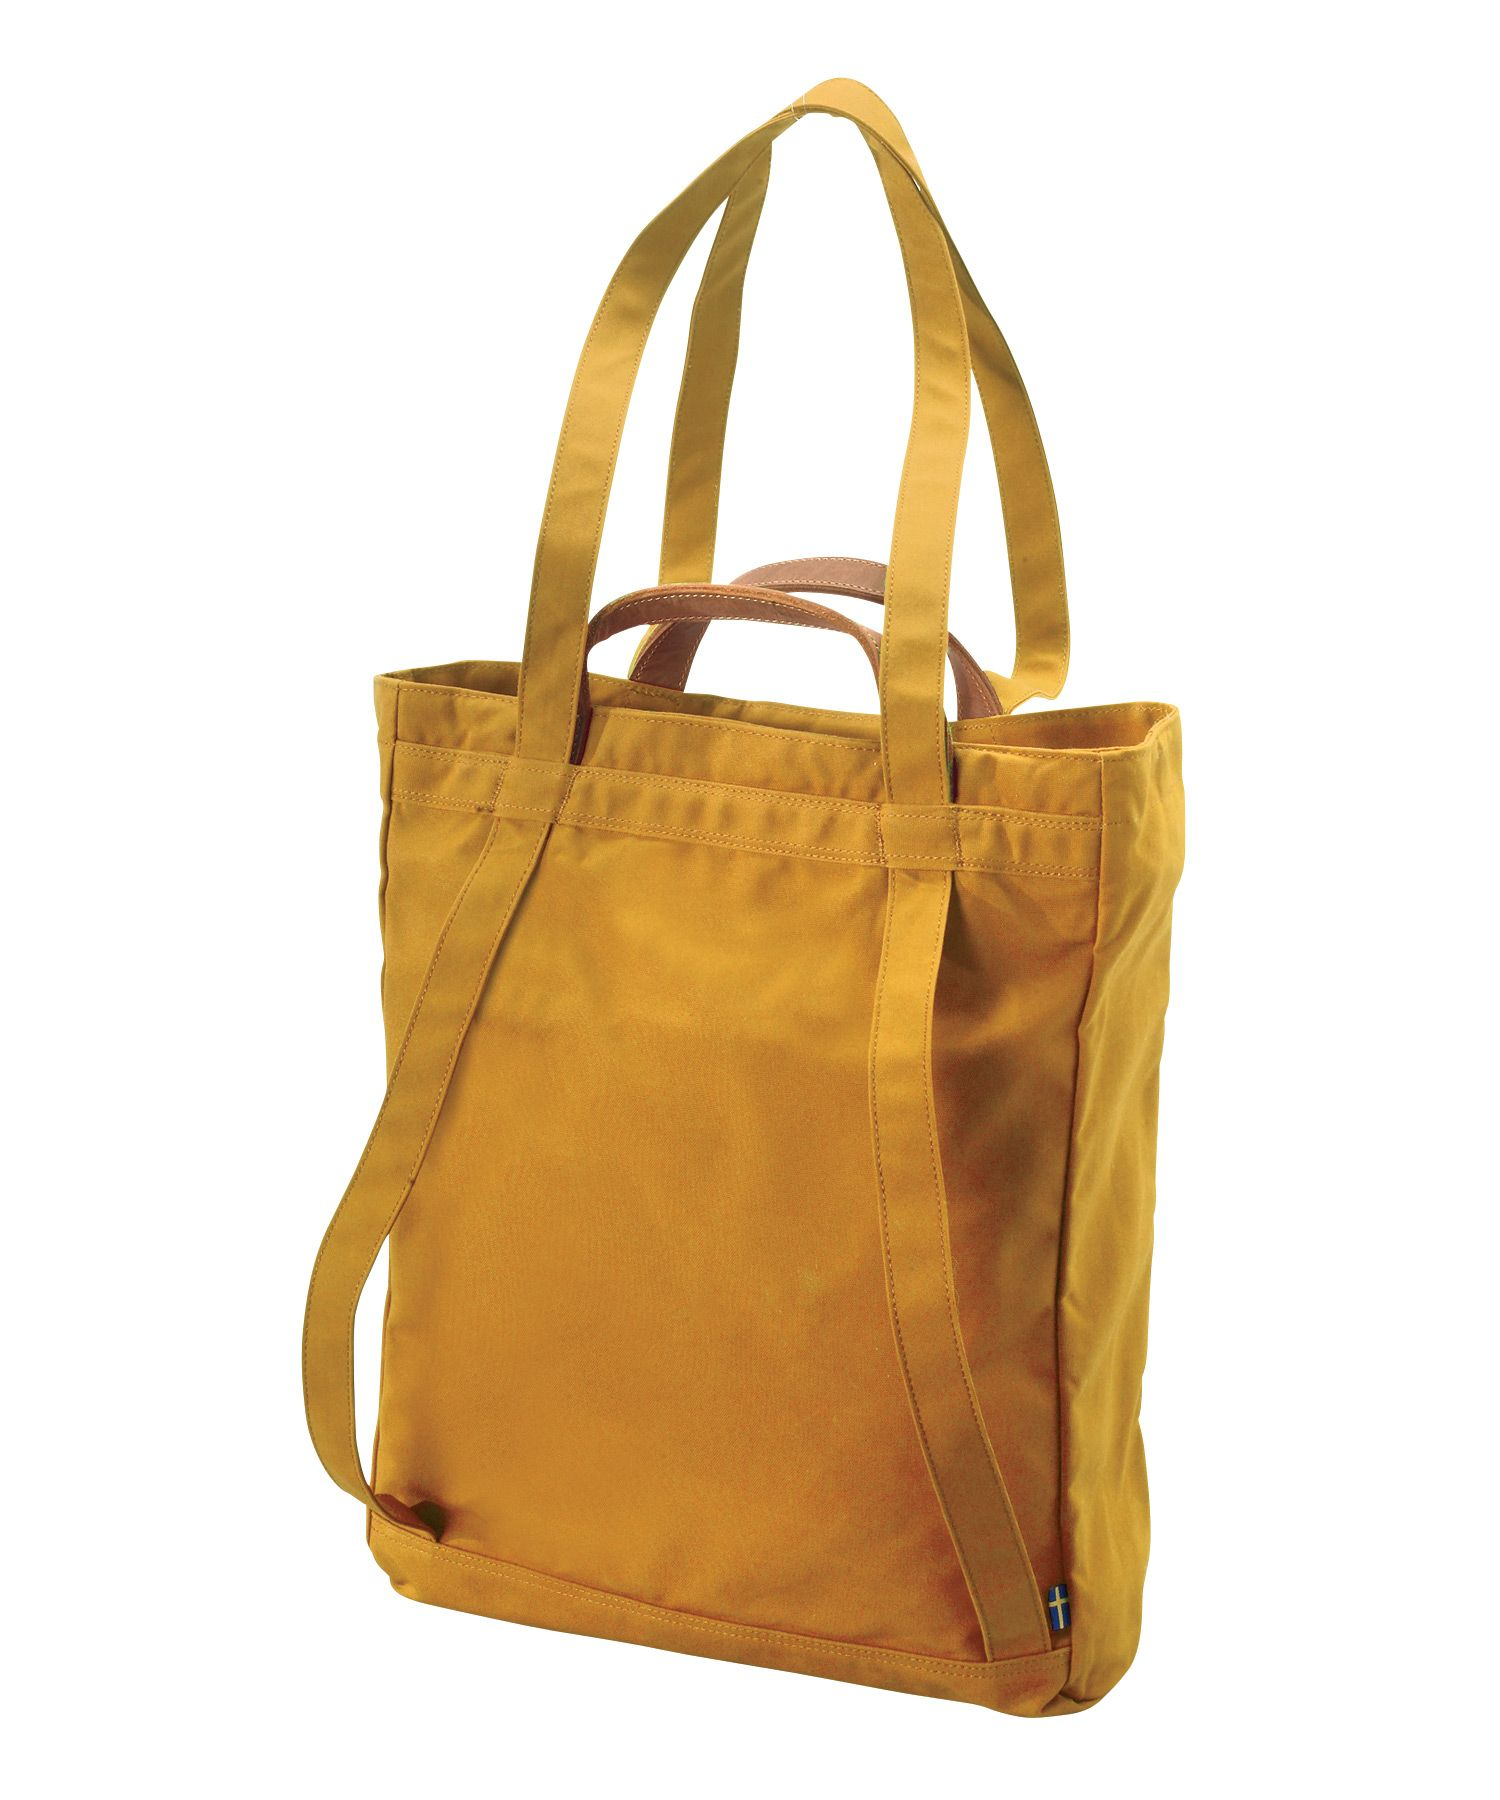 Versatile Tote Pack - can be carried on the shoulder, by hand, or as a backpack - perfect for camping/hiking. Shop Woolrich.com